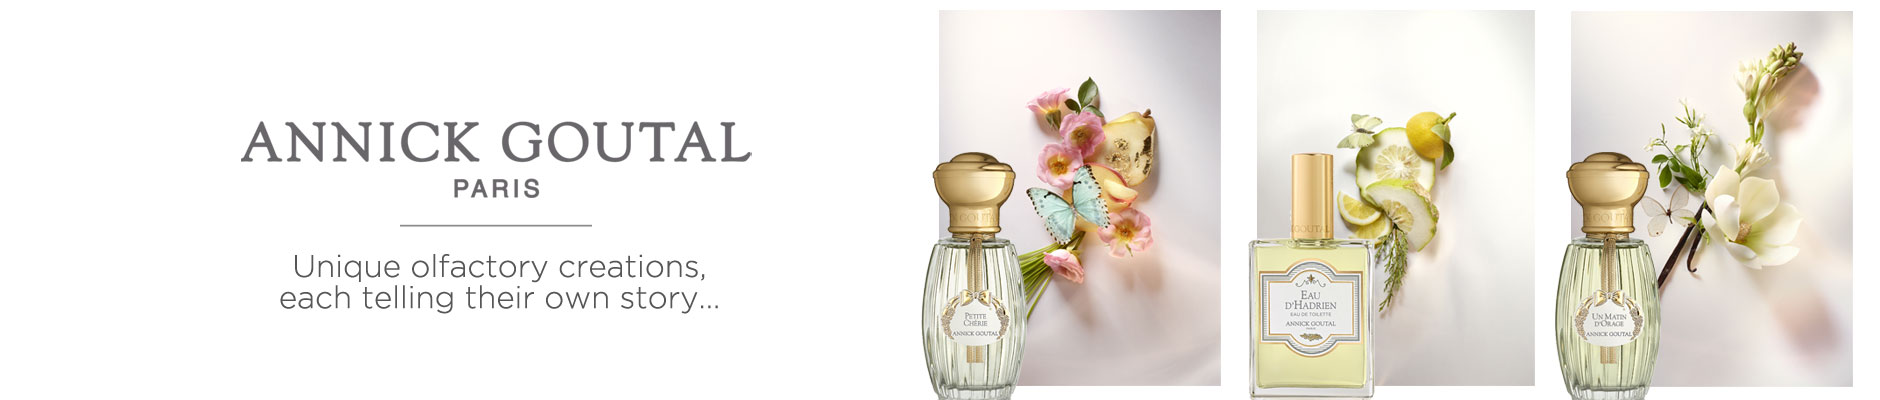 Annick Goutal: Paris - Unique olfactory creations, each telling their own story...